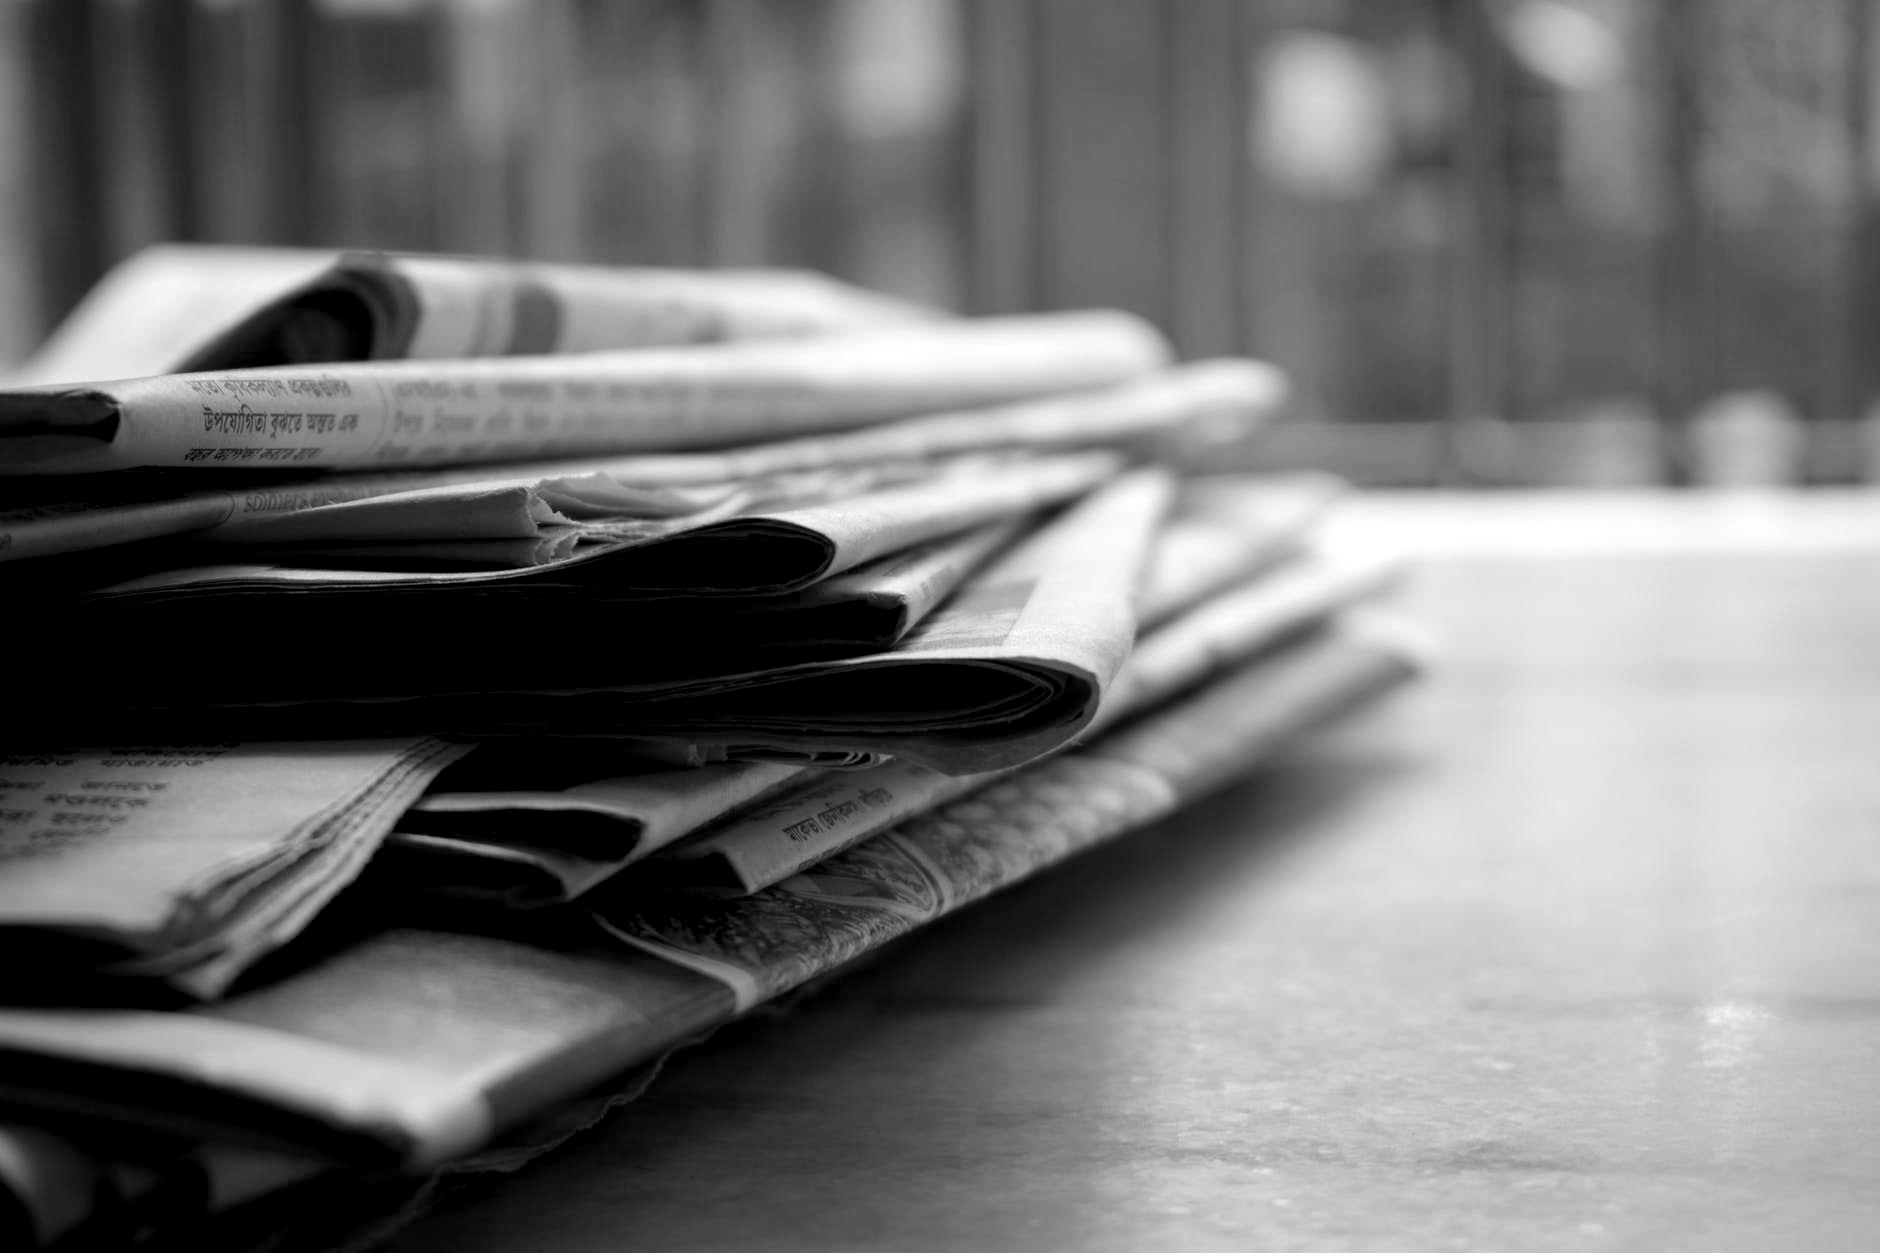 Newspapers pexels photo 29032019